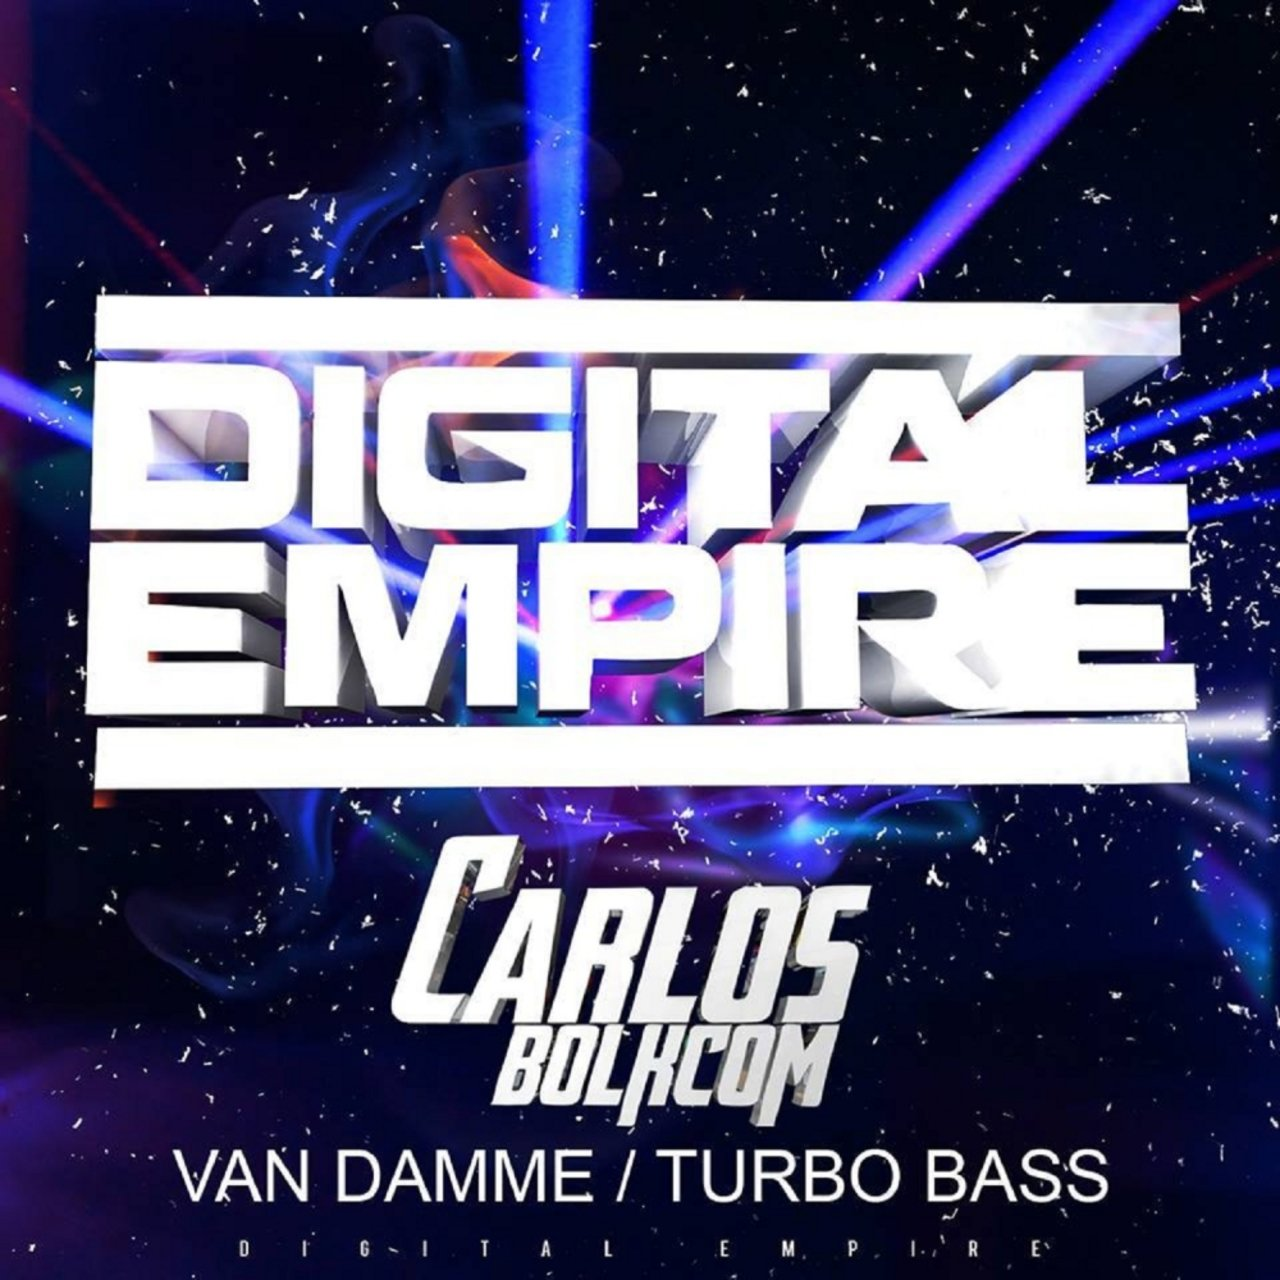 Tidal Listen To Van Damme Turbo Bass On